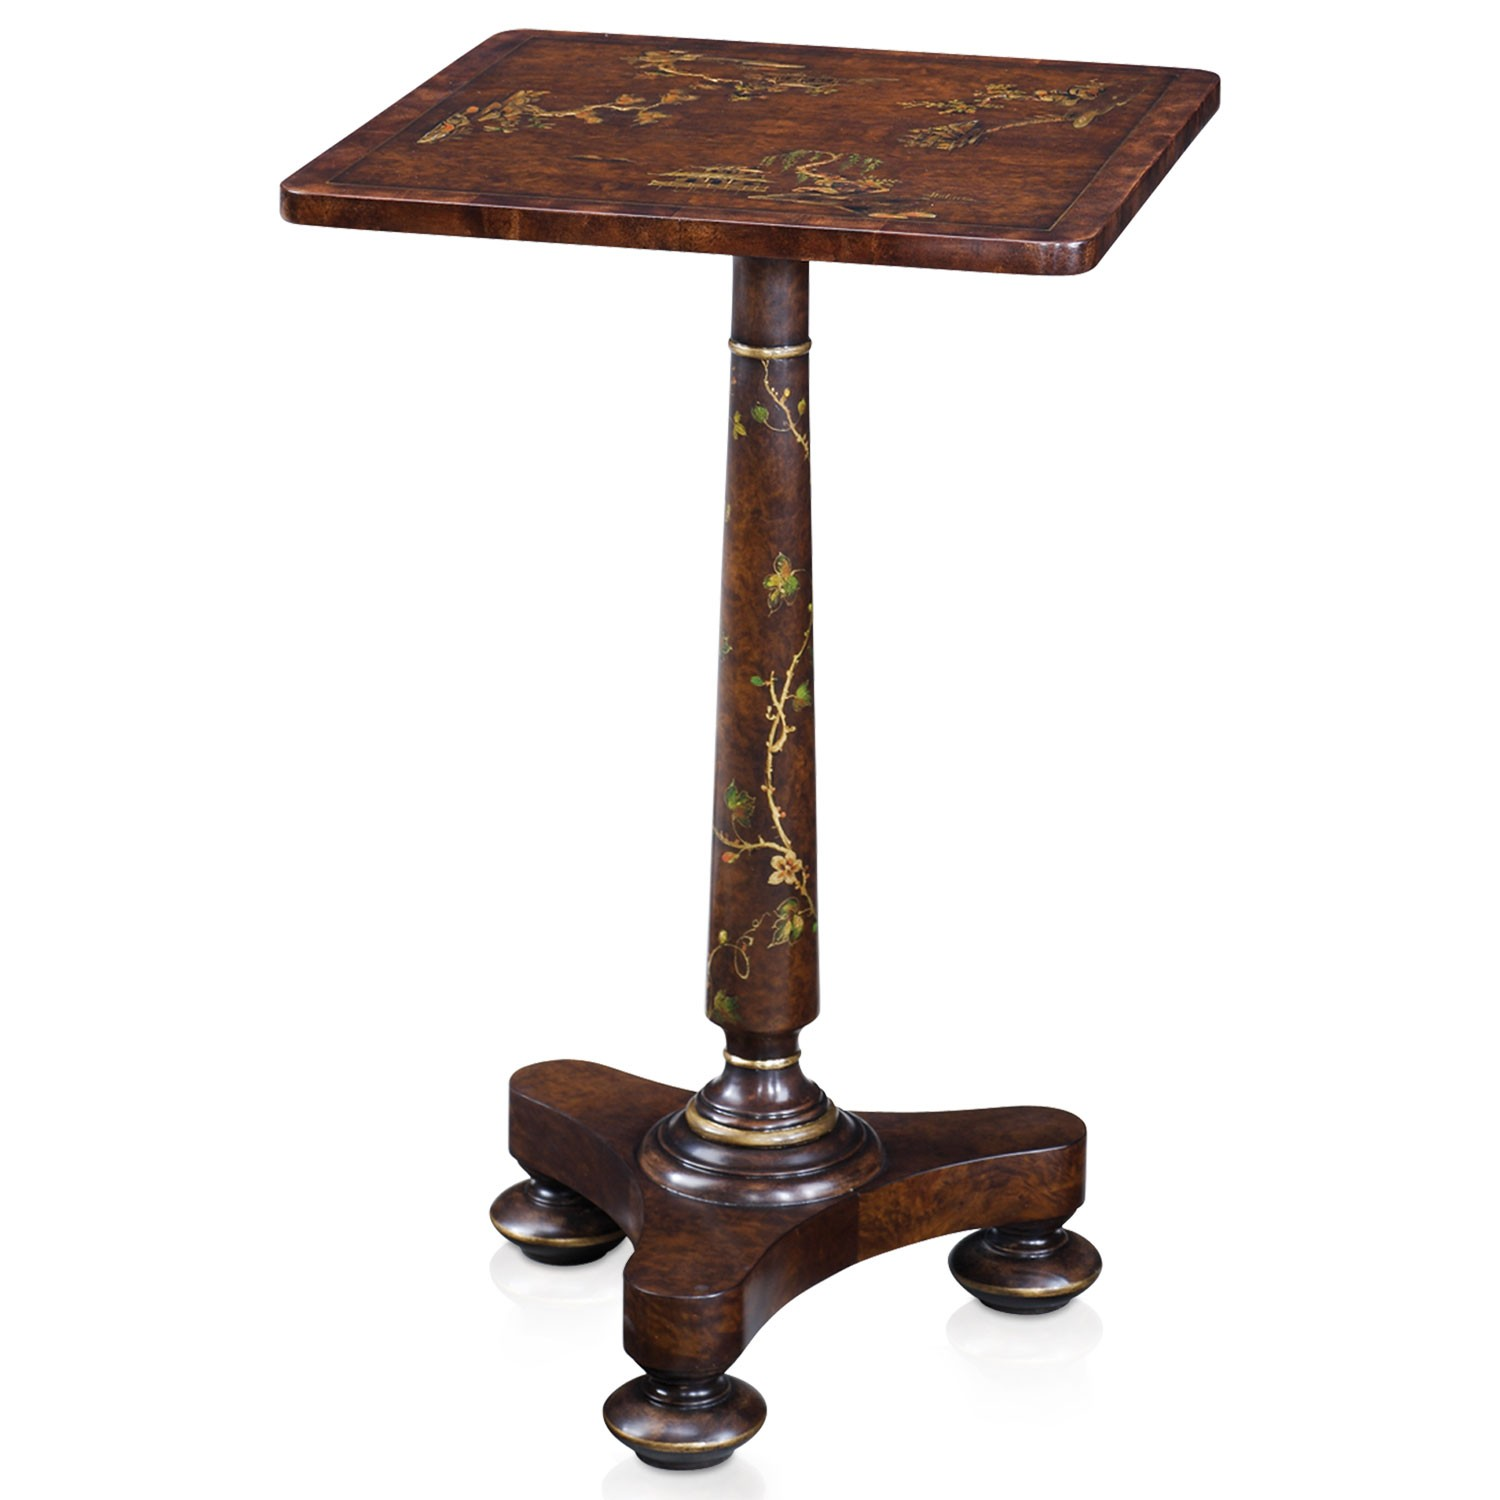 Regency style burl and chocolate Chinoiserie painted lamp table